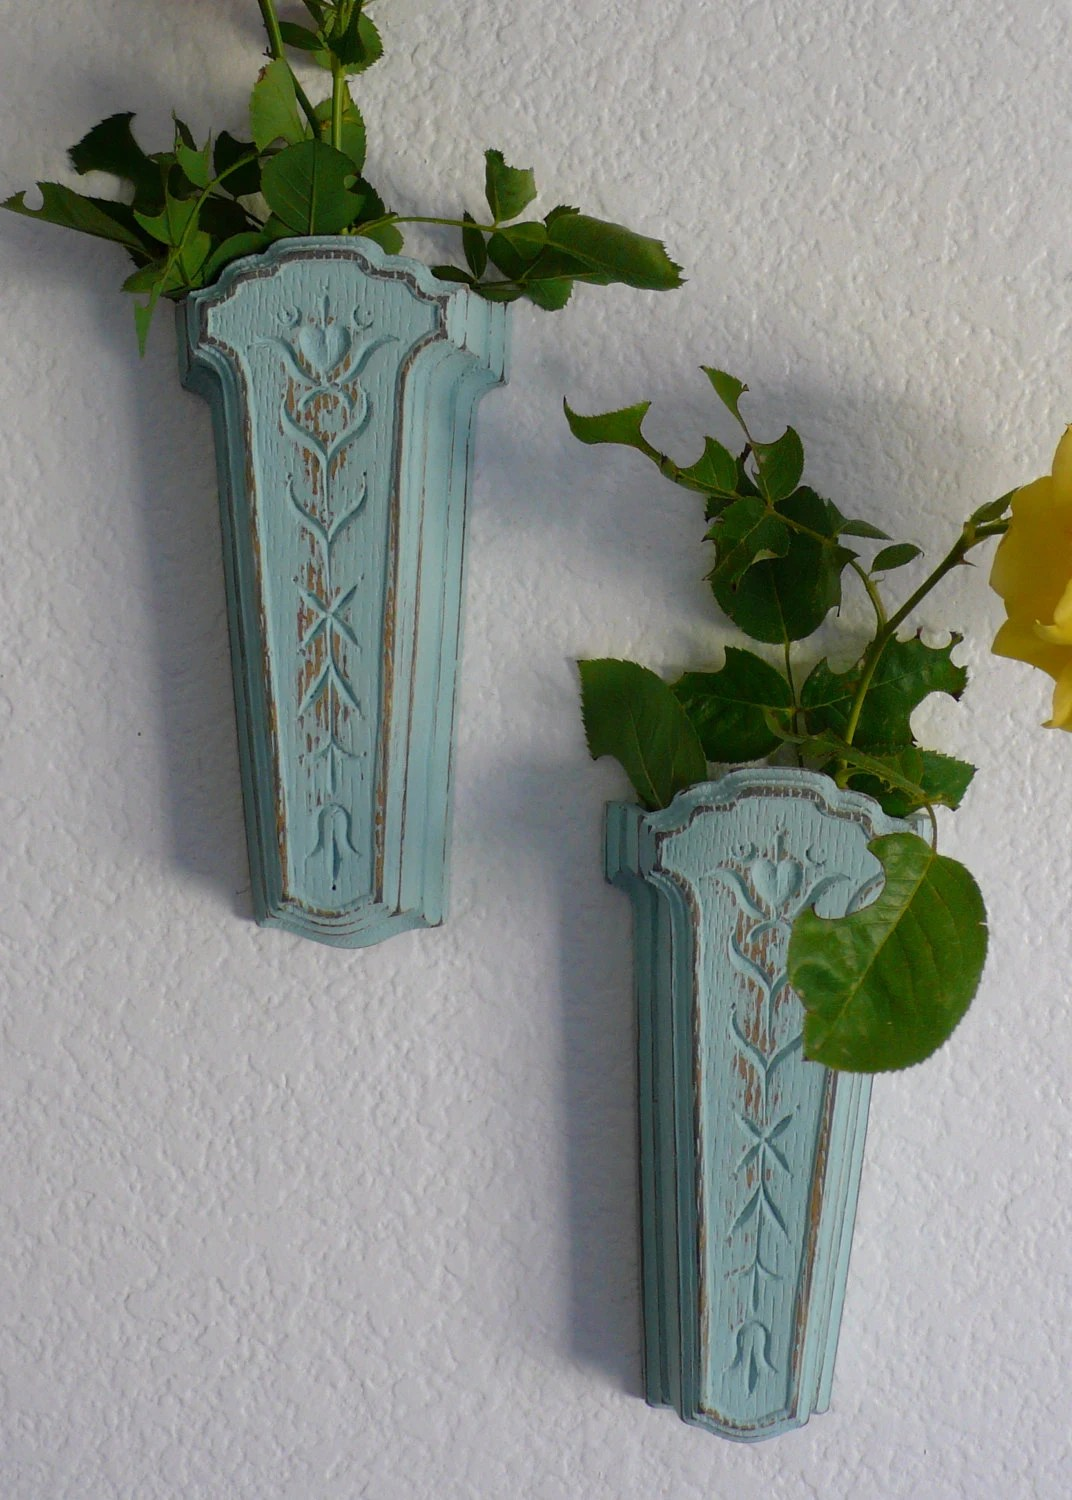 Vintage Wall Pockets Shabby Chic Wall Sconces Floral on Flower Wall Sconces id=52025